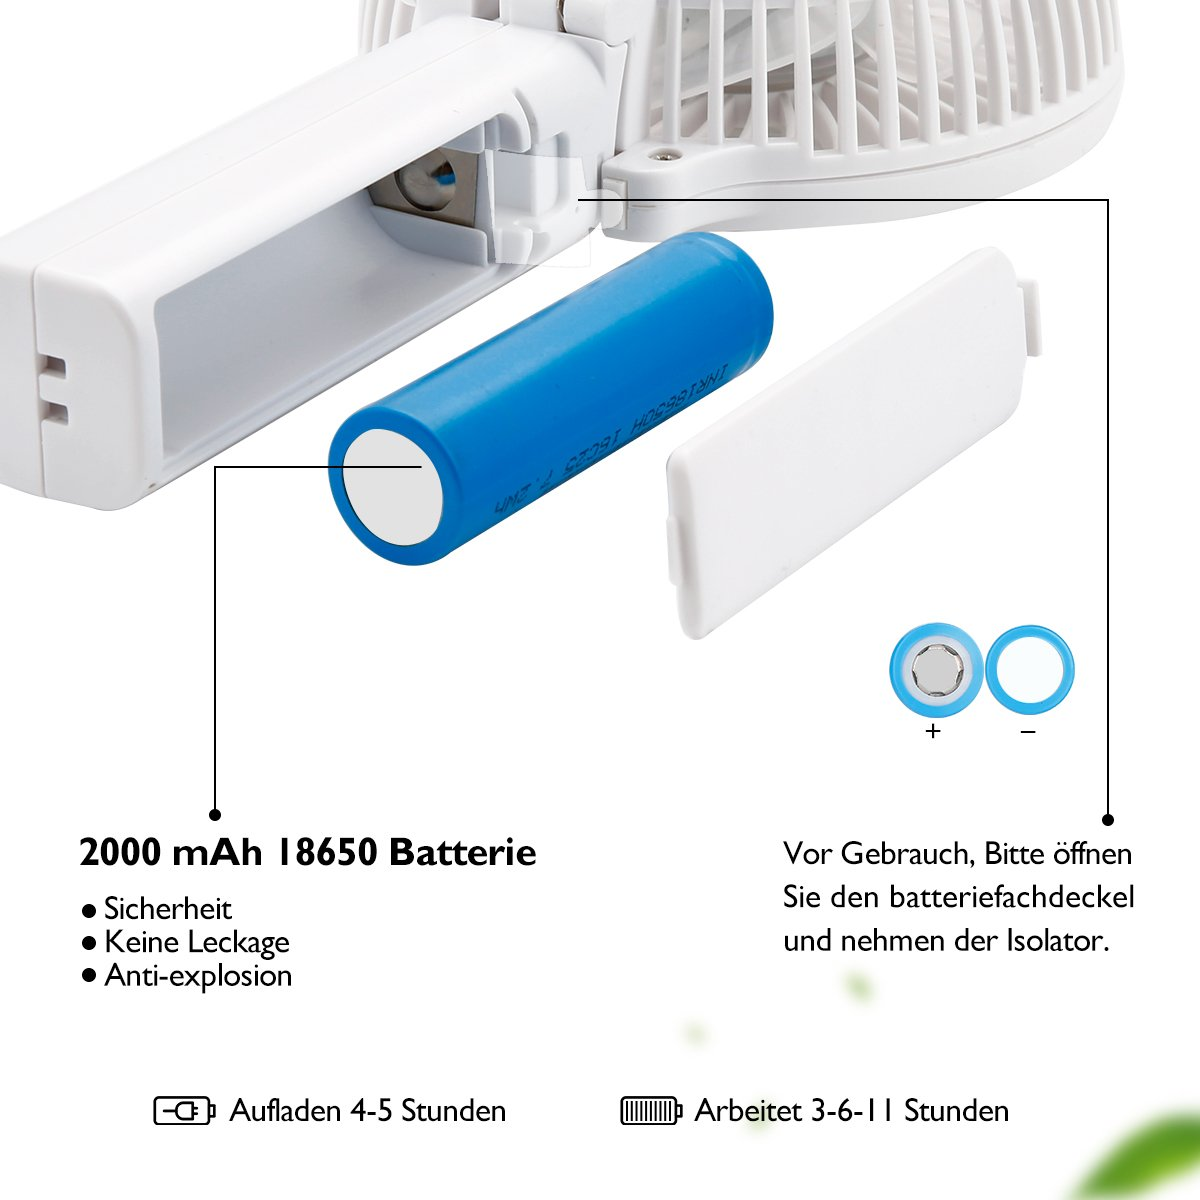 3 Speeds Desk Fan for Home Portable USB Mini Travel Fan with 2000mAh Rechargeable Battery iEGrow Handheld Fan Office and Travel-Blue